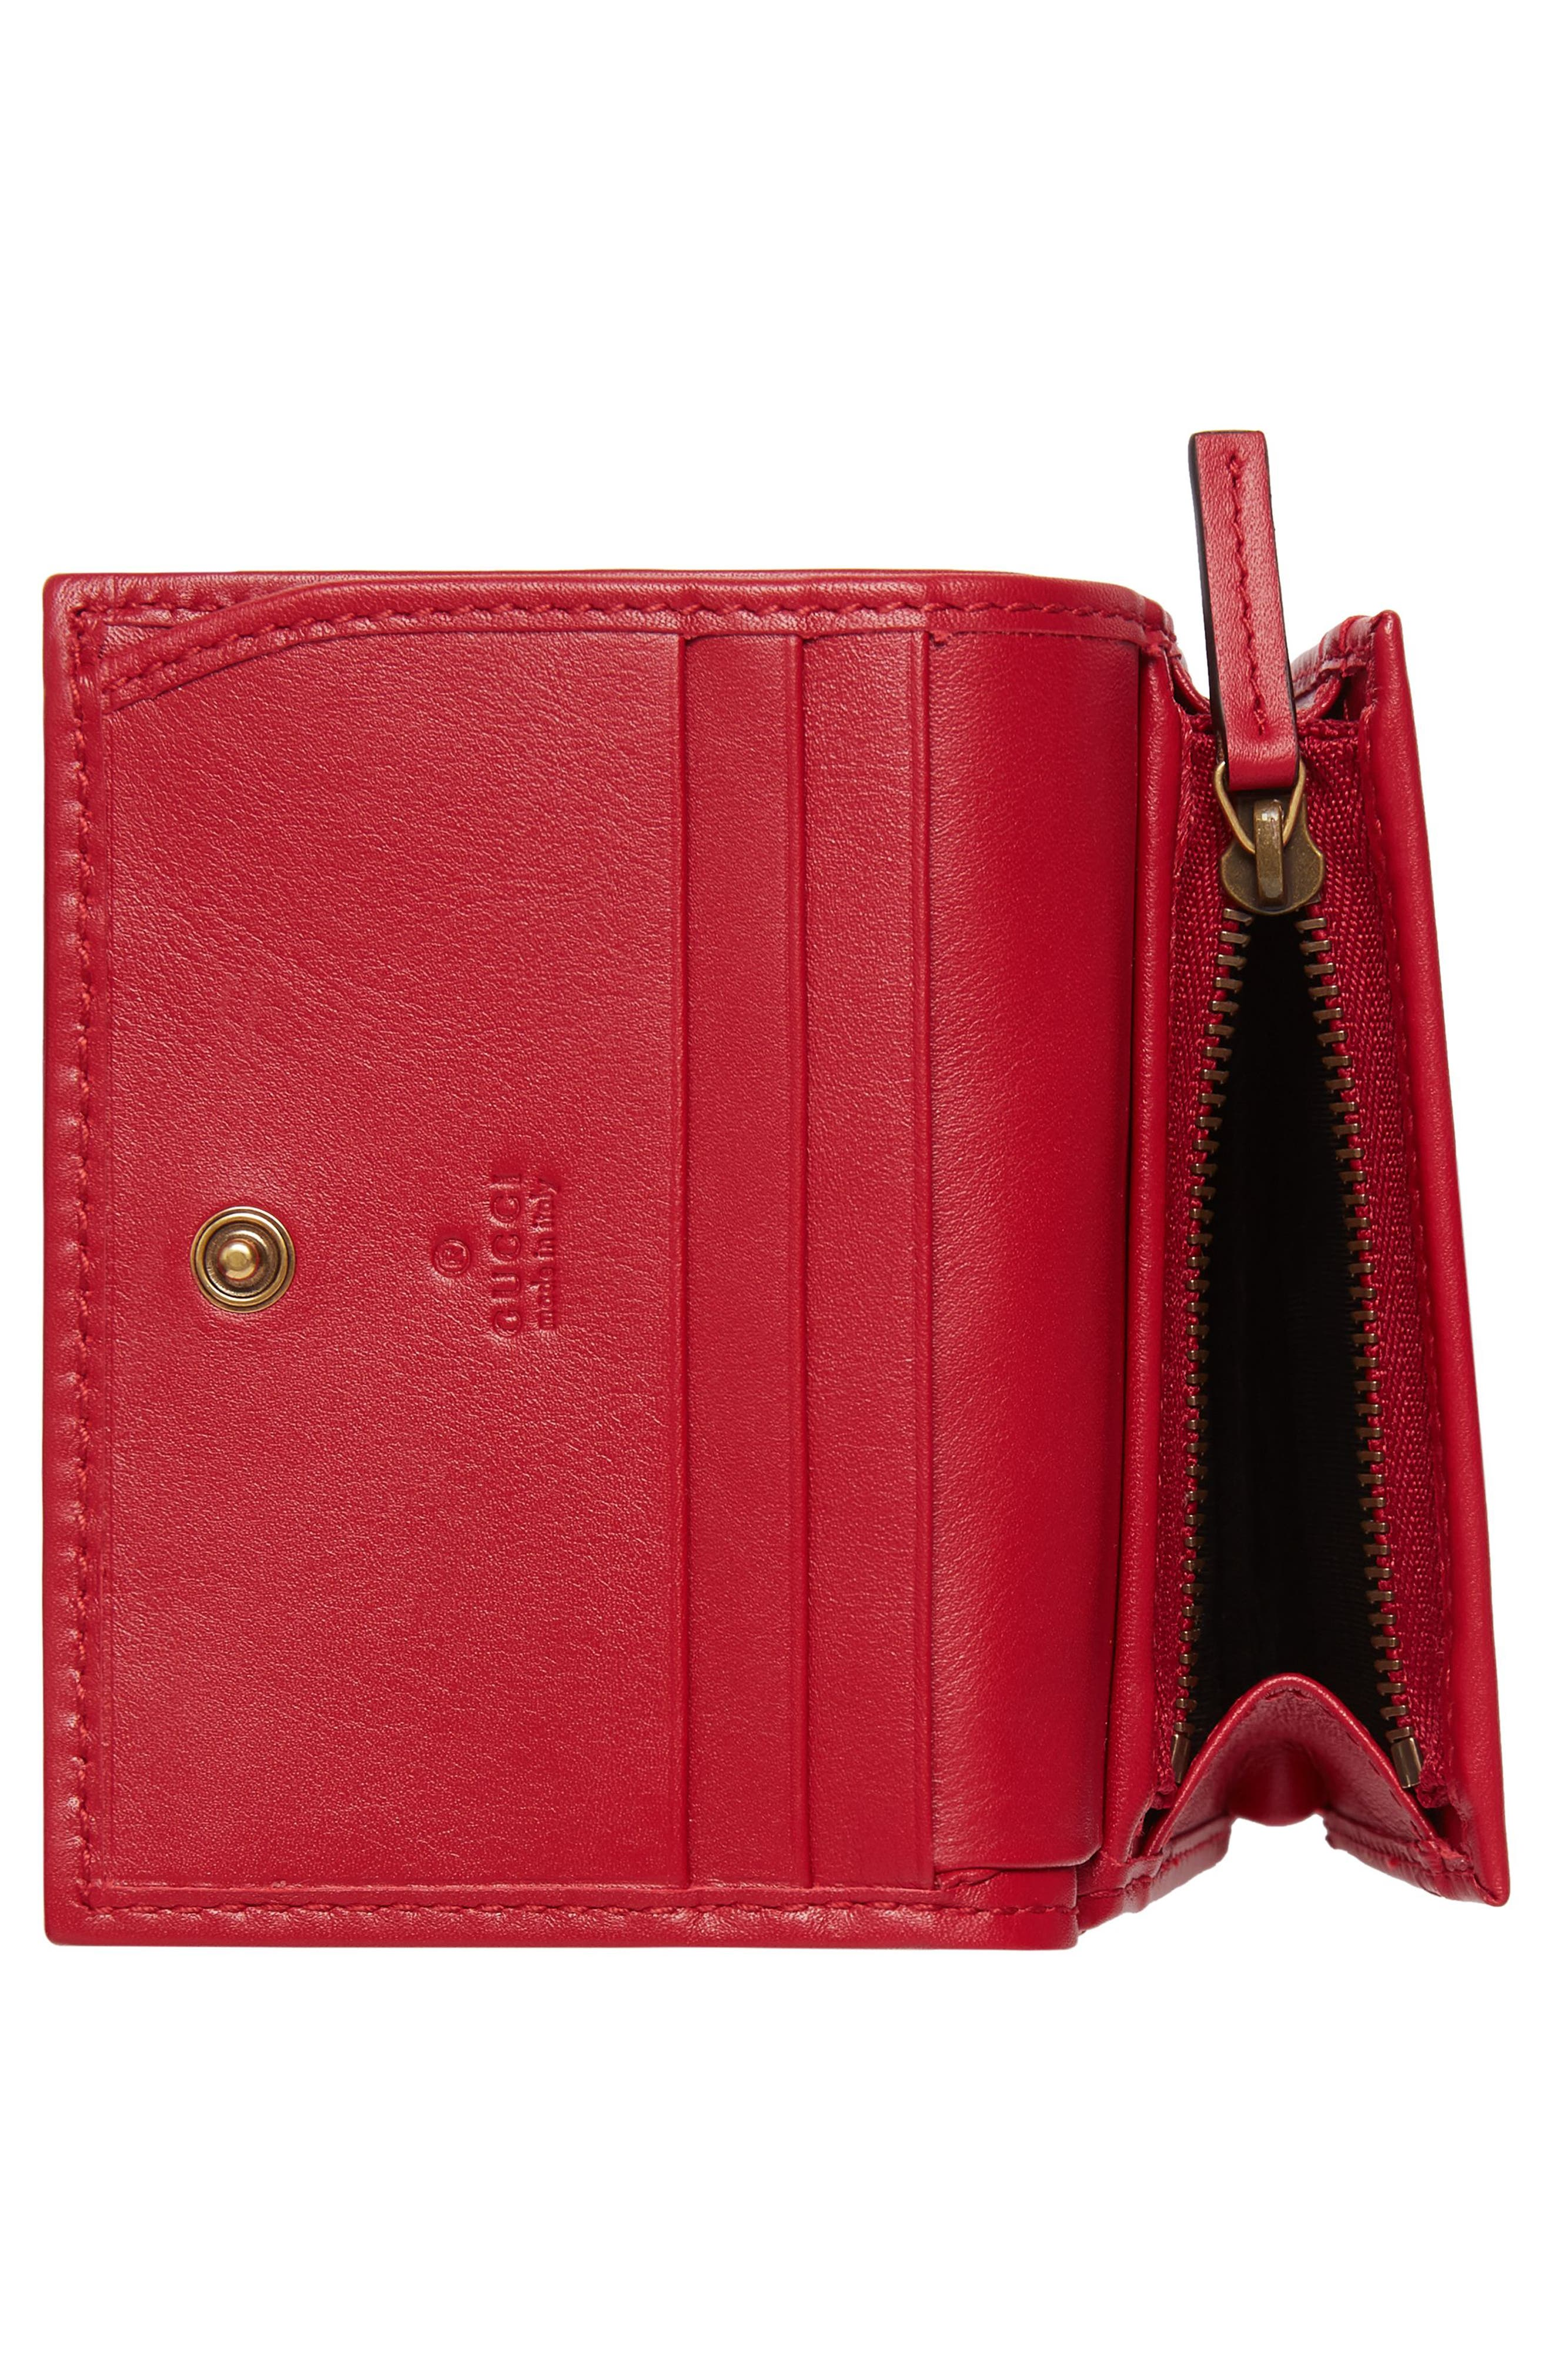 GG Marmont Matelassé Leather Card Case,                             Alternate thumbnail 3, color,                             Hibiscus Red